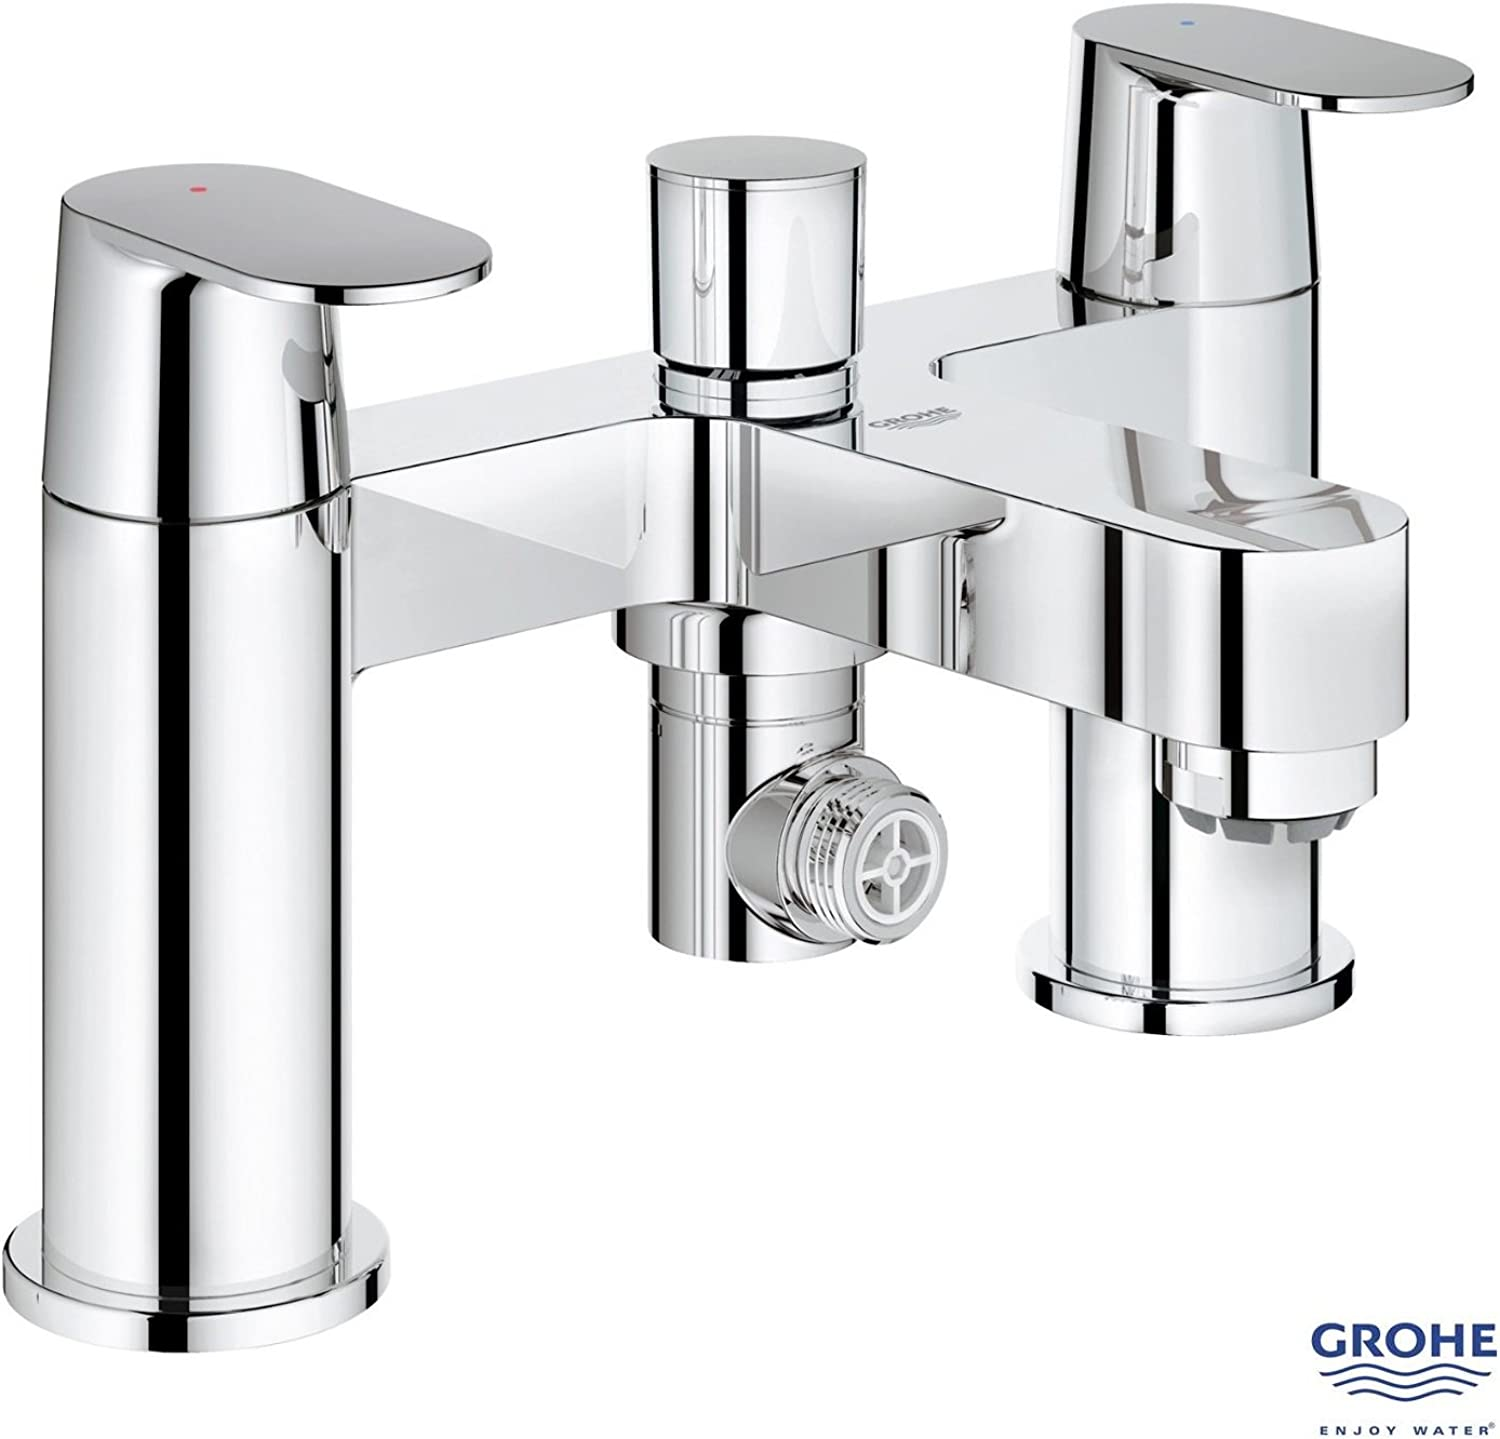 GROHE Eurosmart Cosmo Deck Mounted Bath Shower Mixer, Low High Pressure, 25129 000